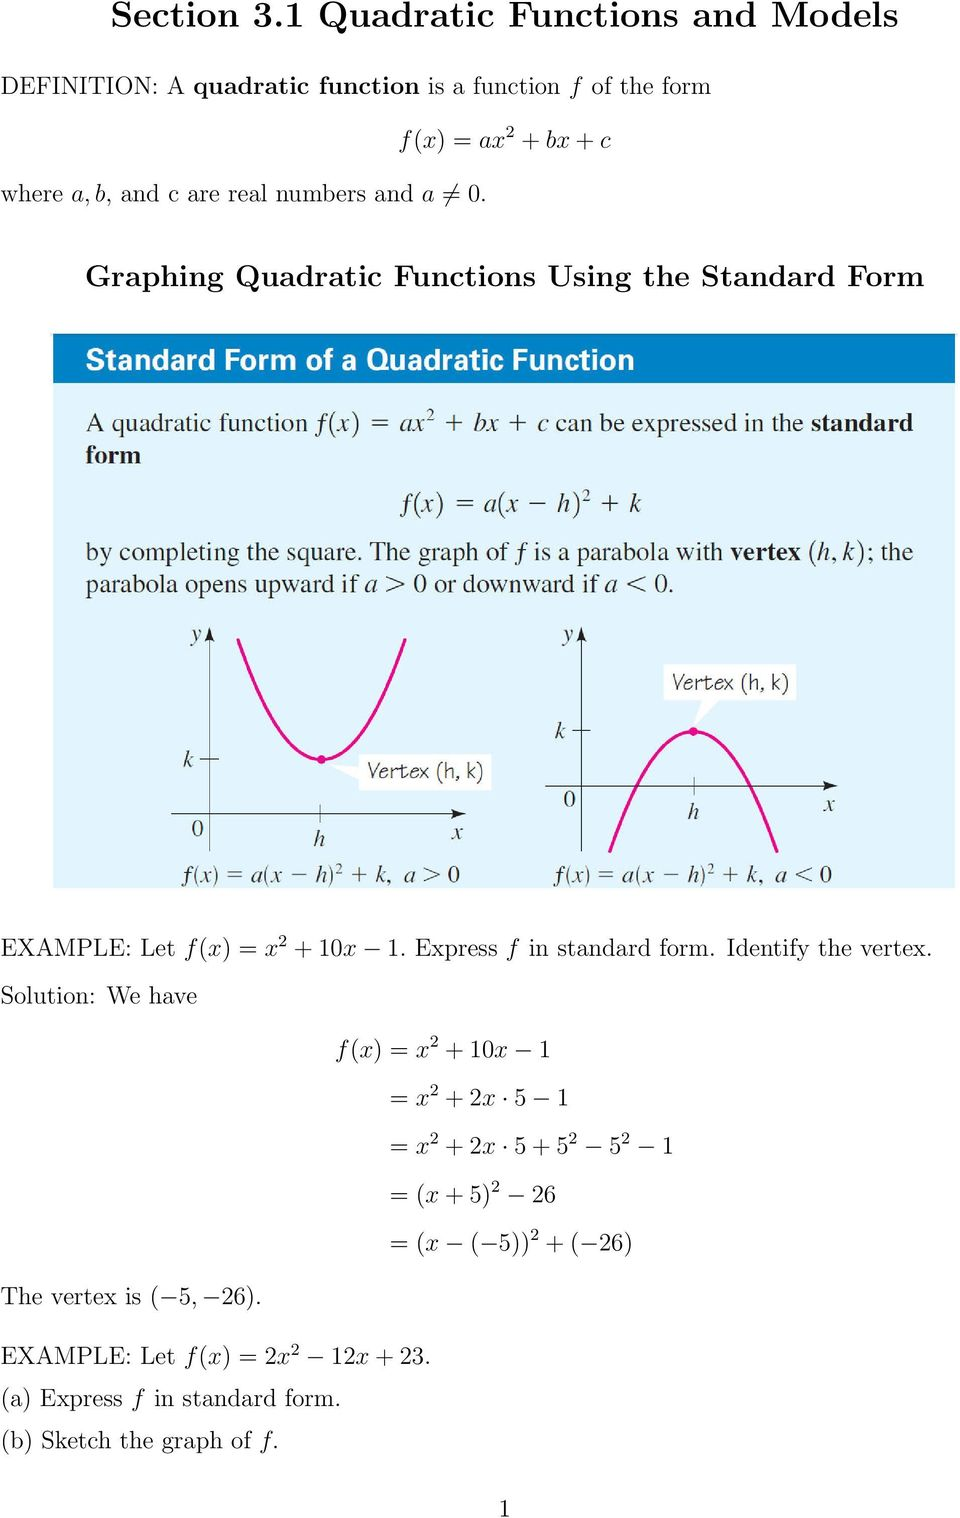 Section 31 Quadratic Functions And Models Pdf